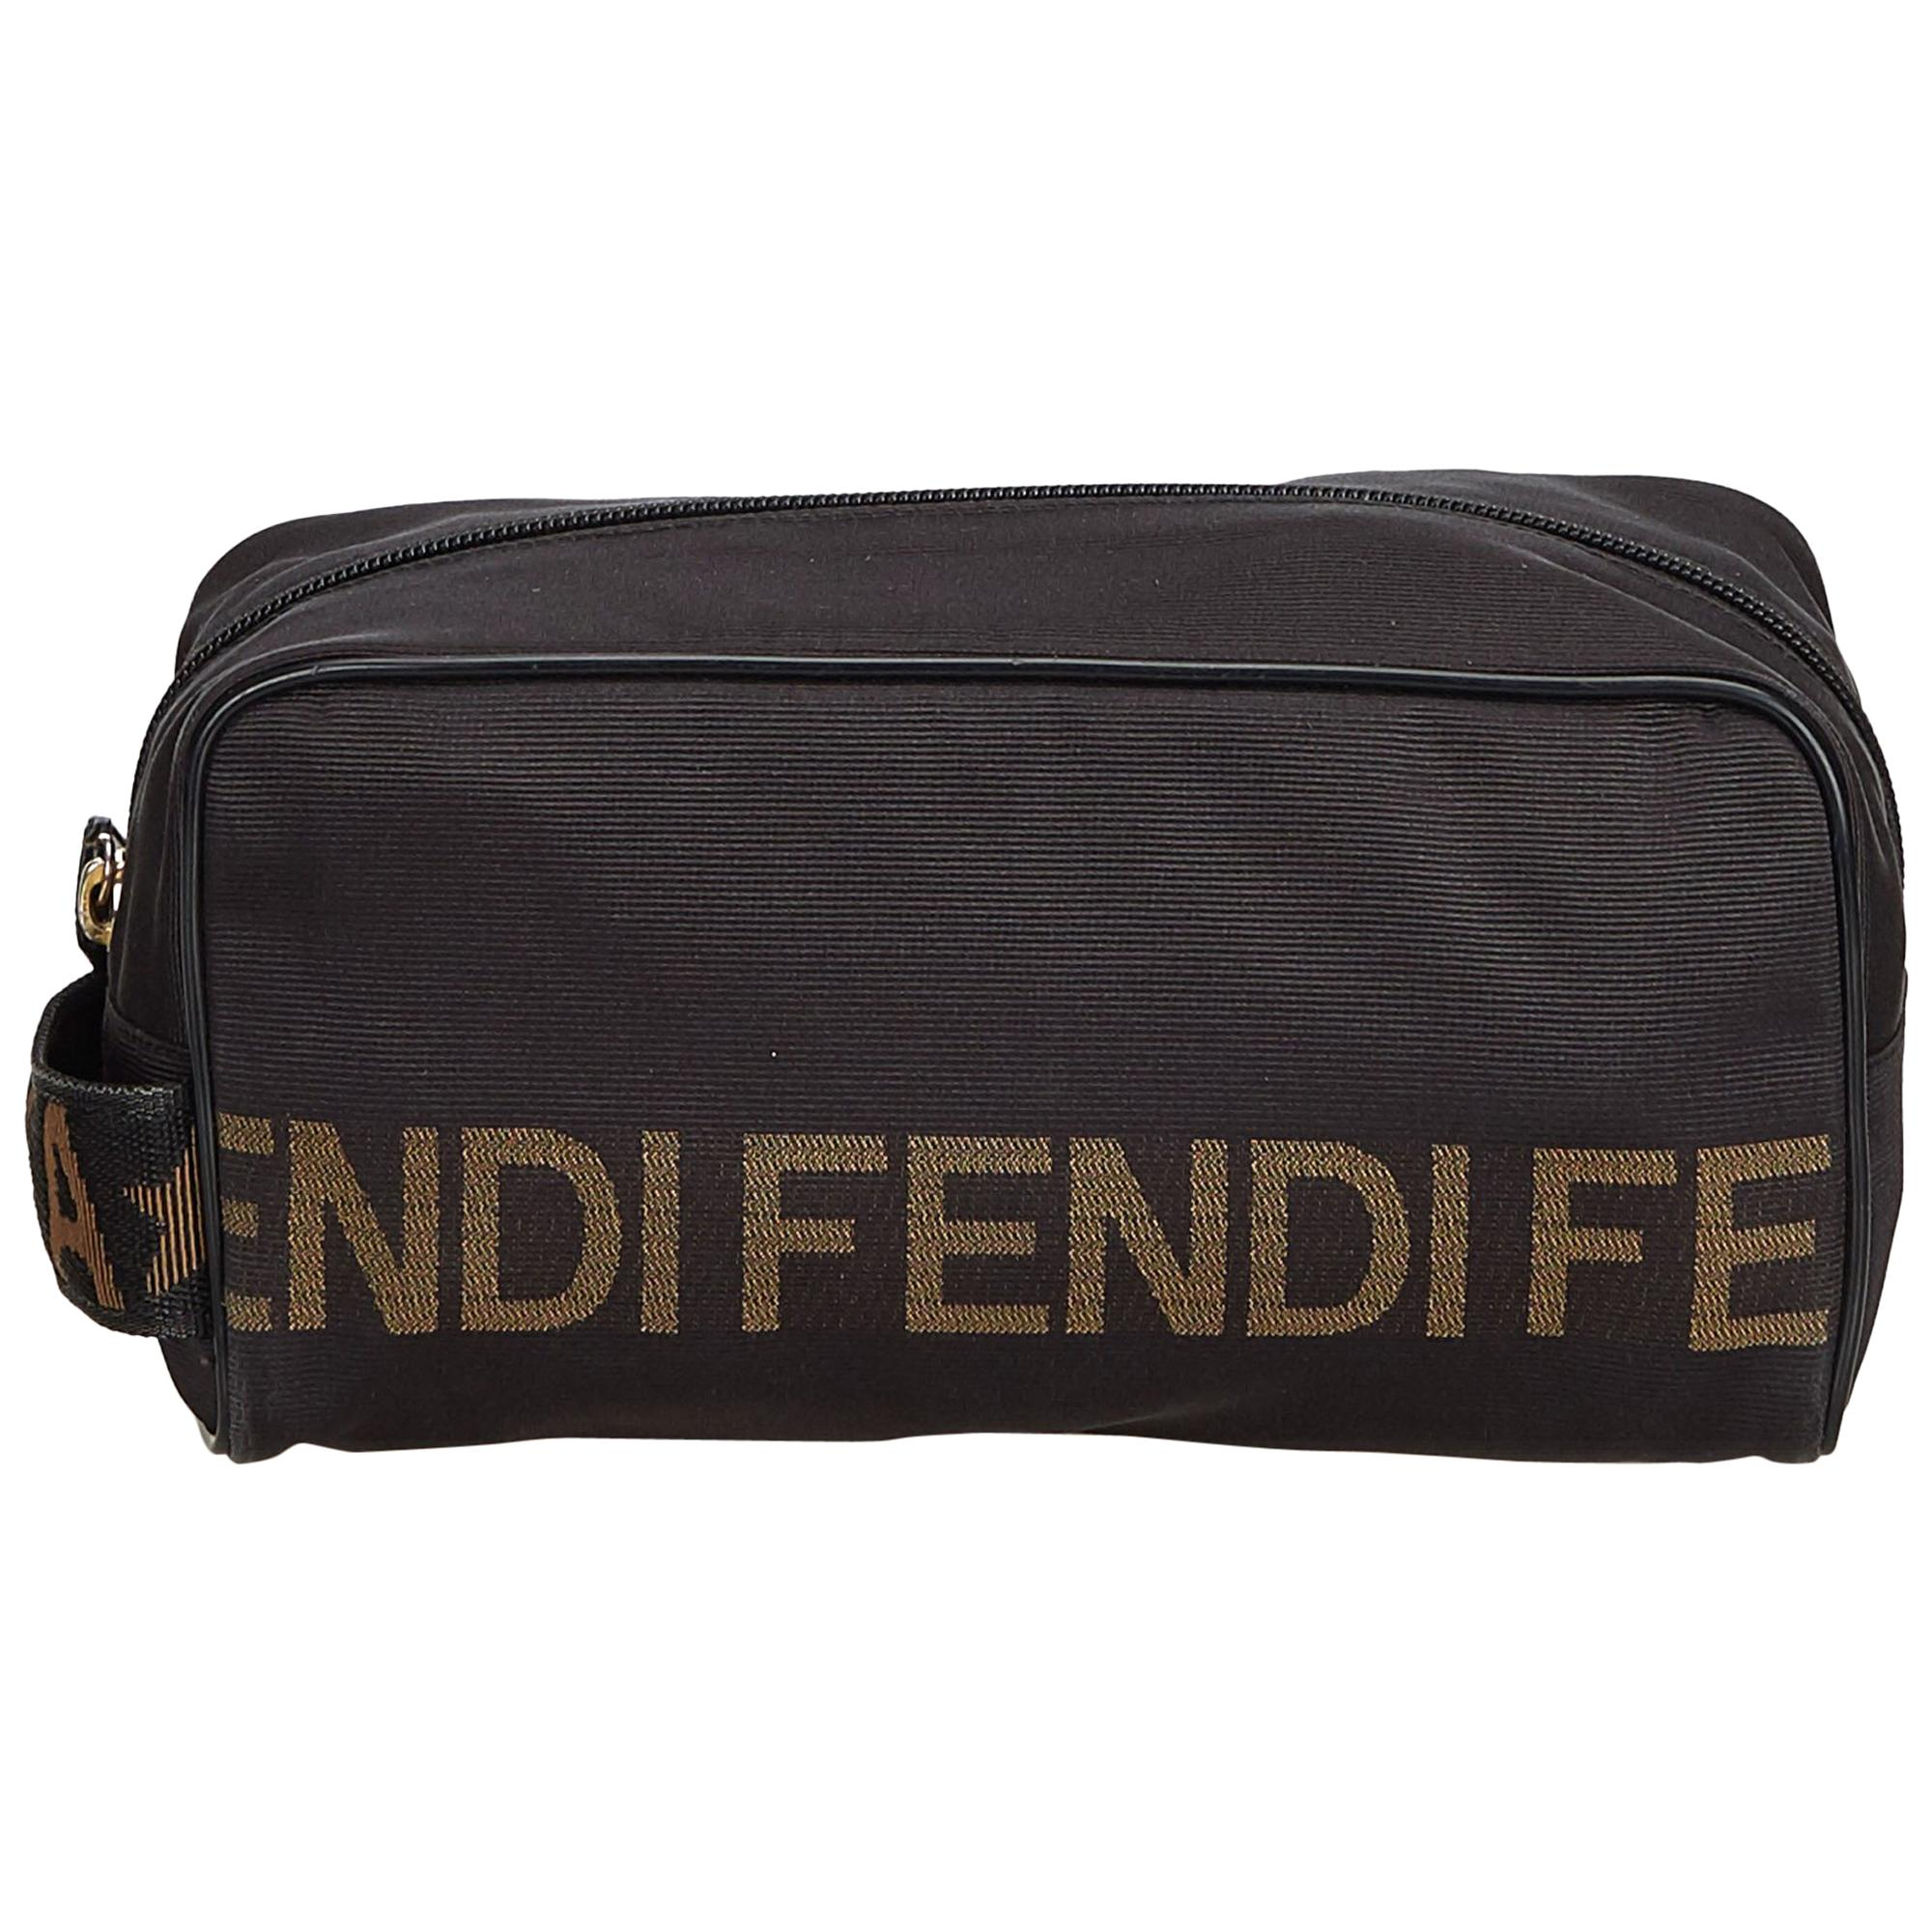 24495f9885 Vintage Fendi Clutches - 37 For Sale at 1stdibs